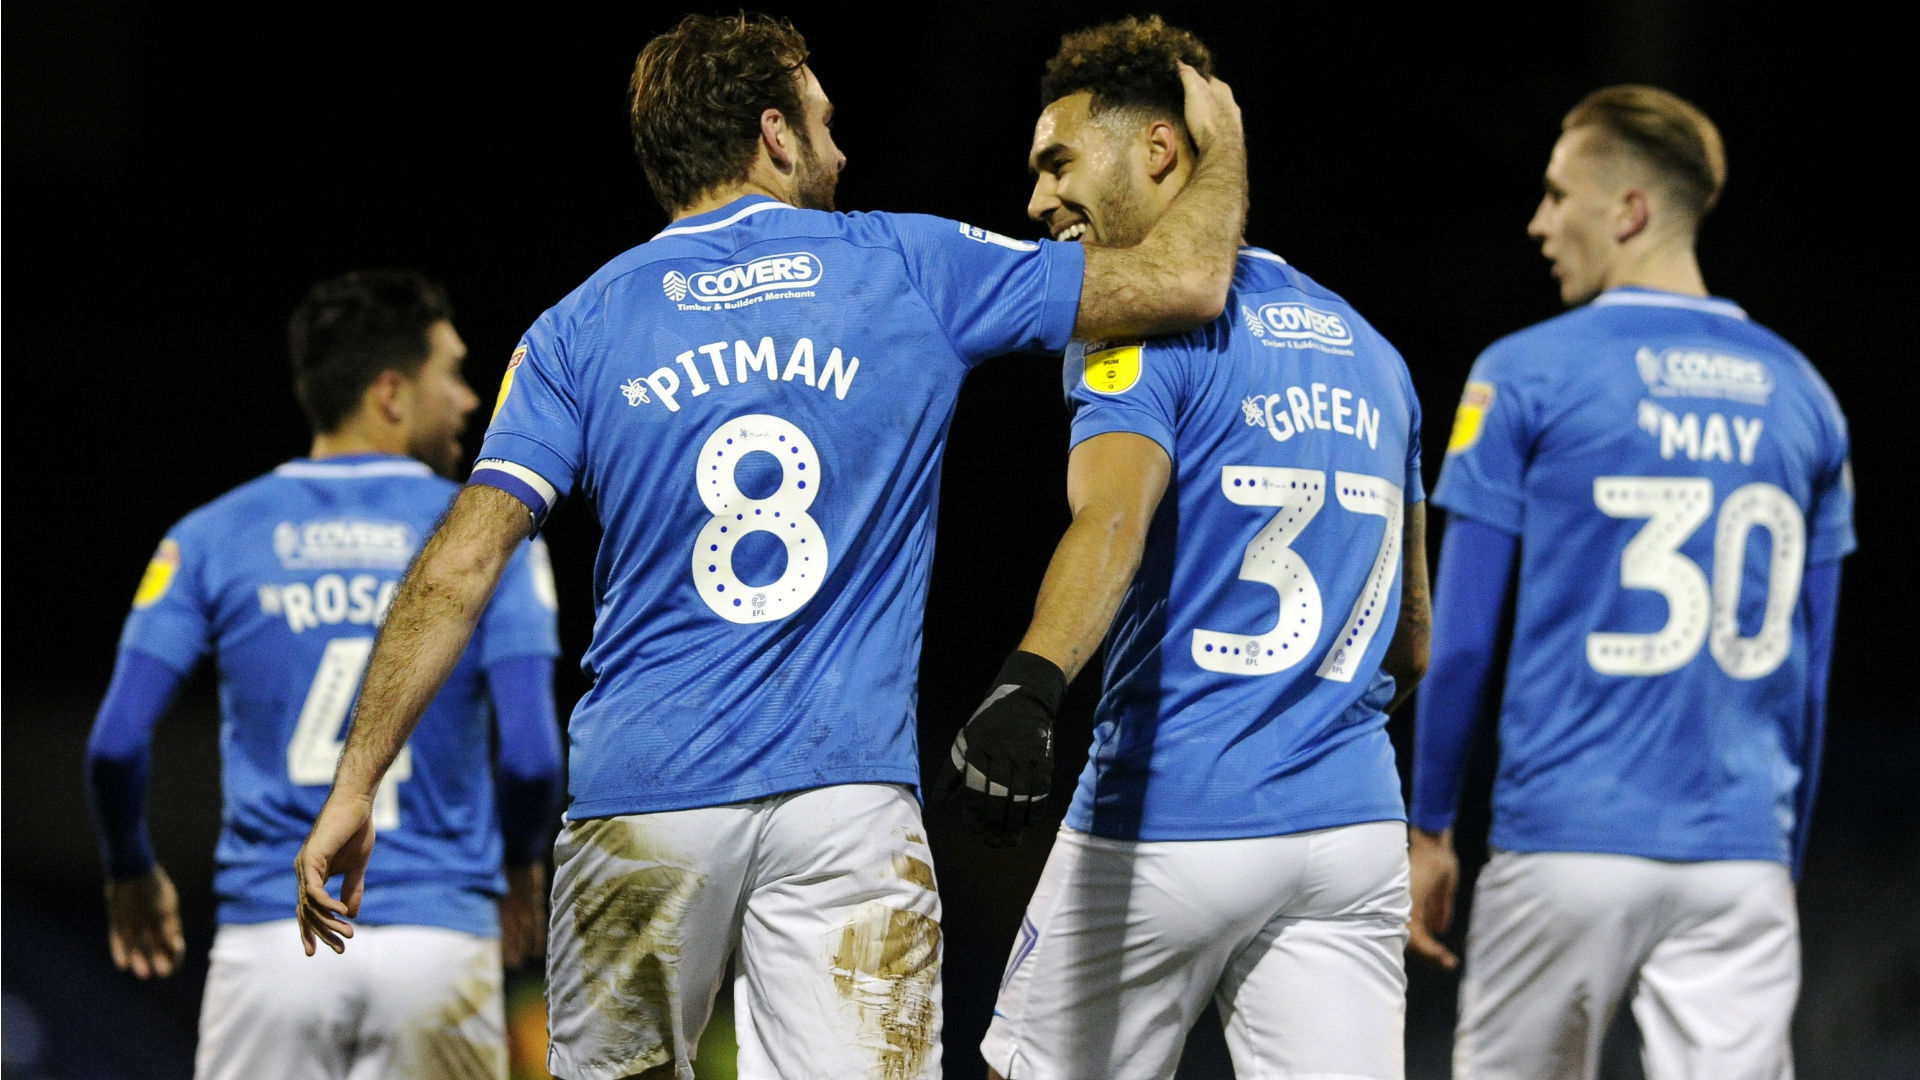 Portsmouth League One